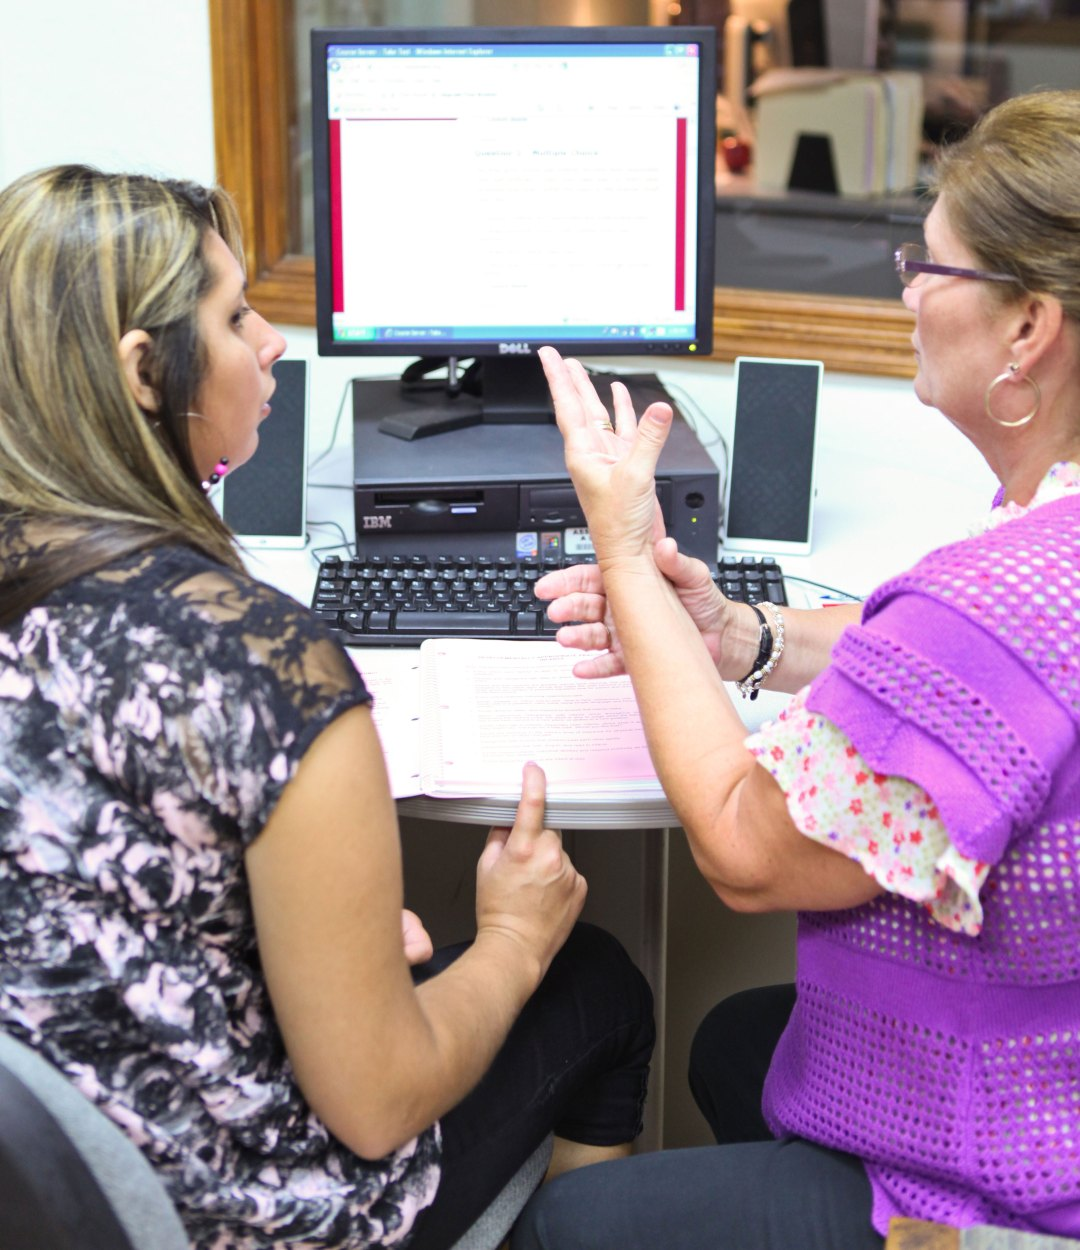 DRTC Employment Training Specialist Vivan (pictured, right) helps an individual through the job search process